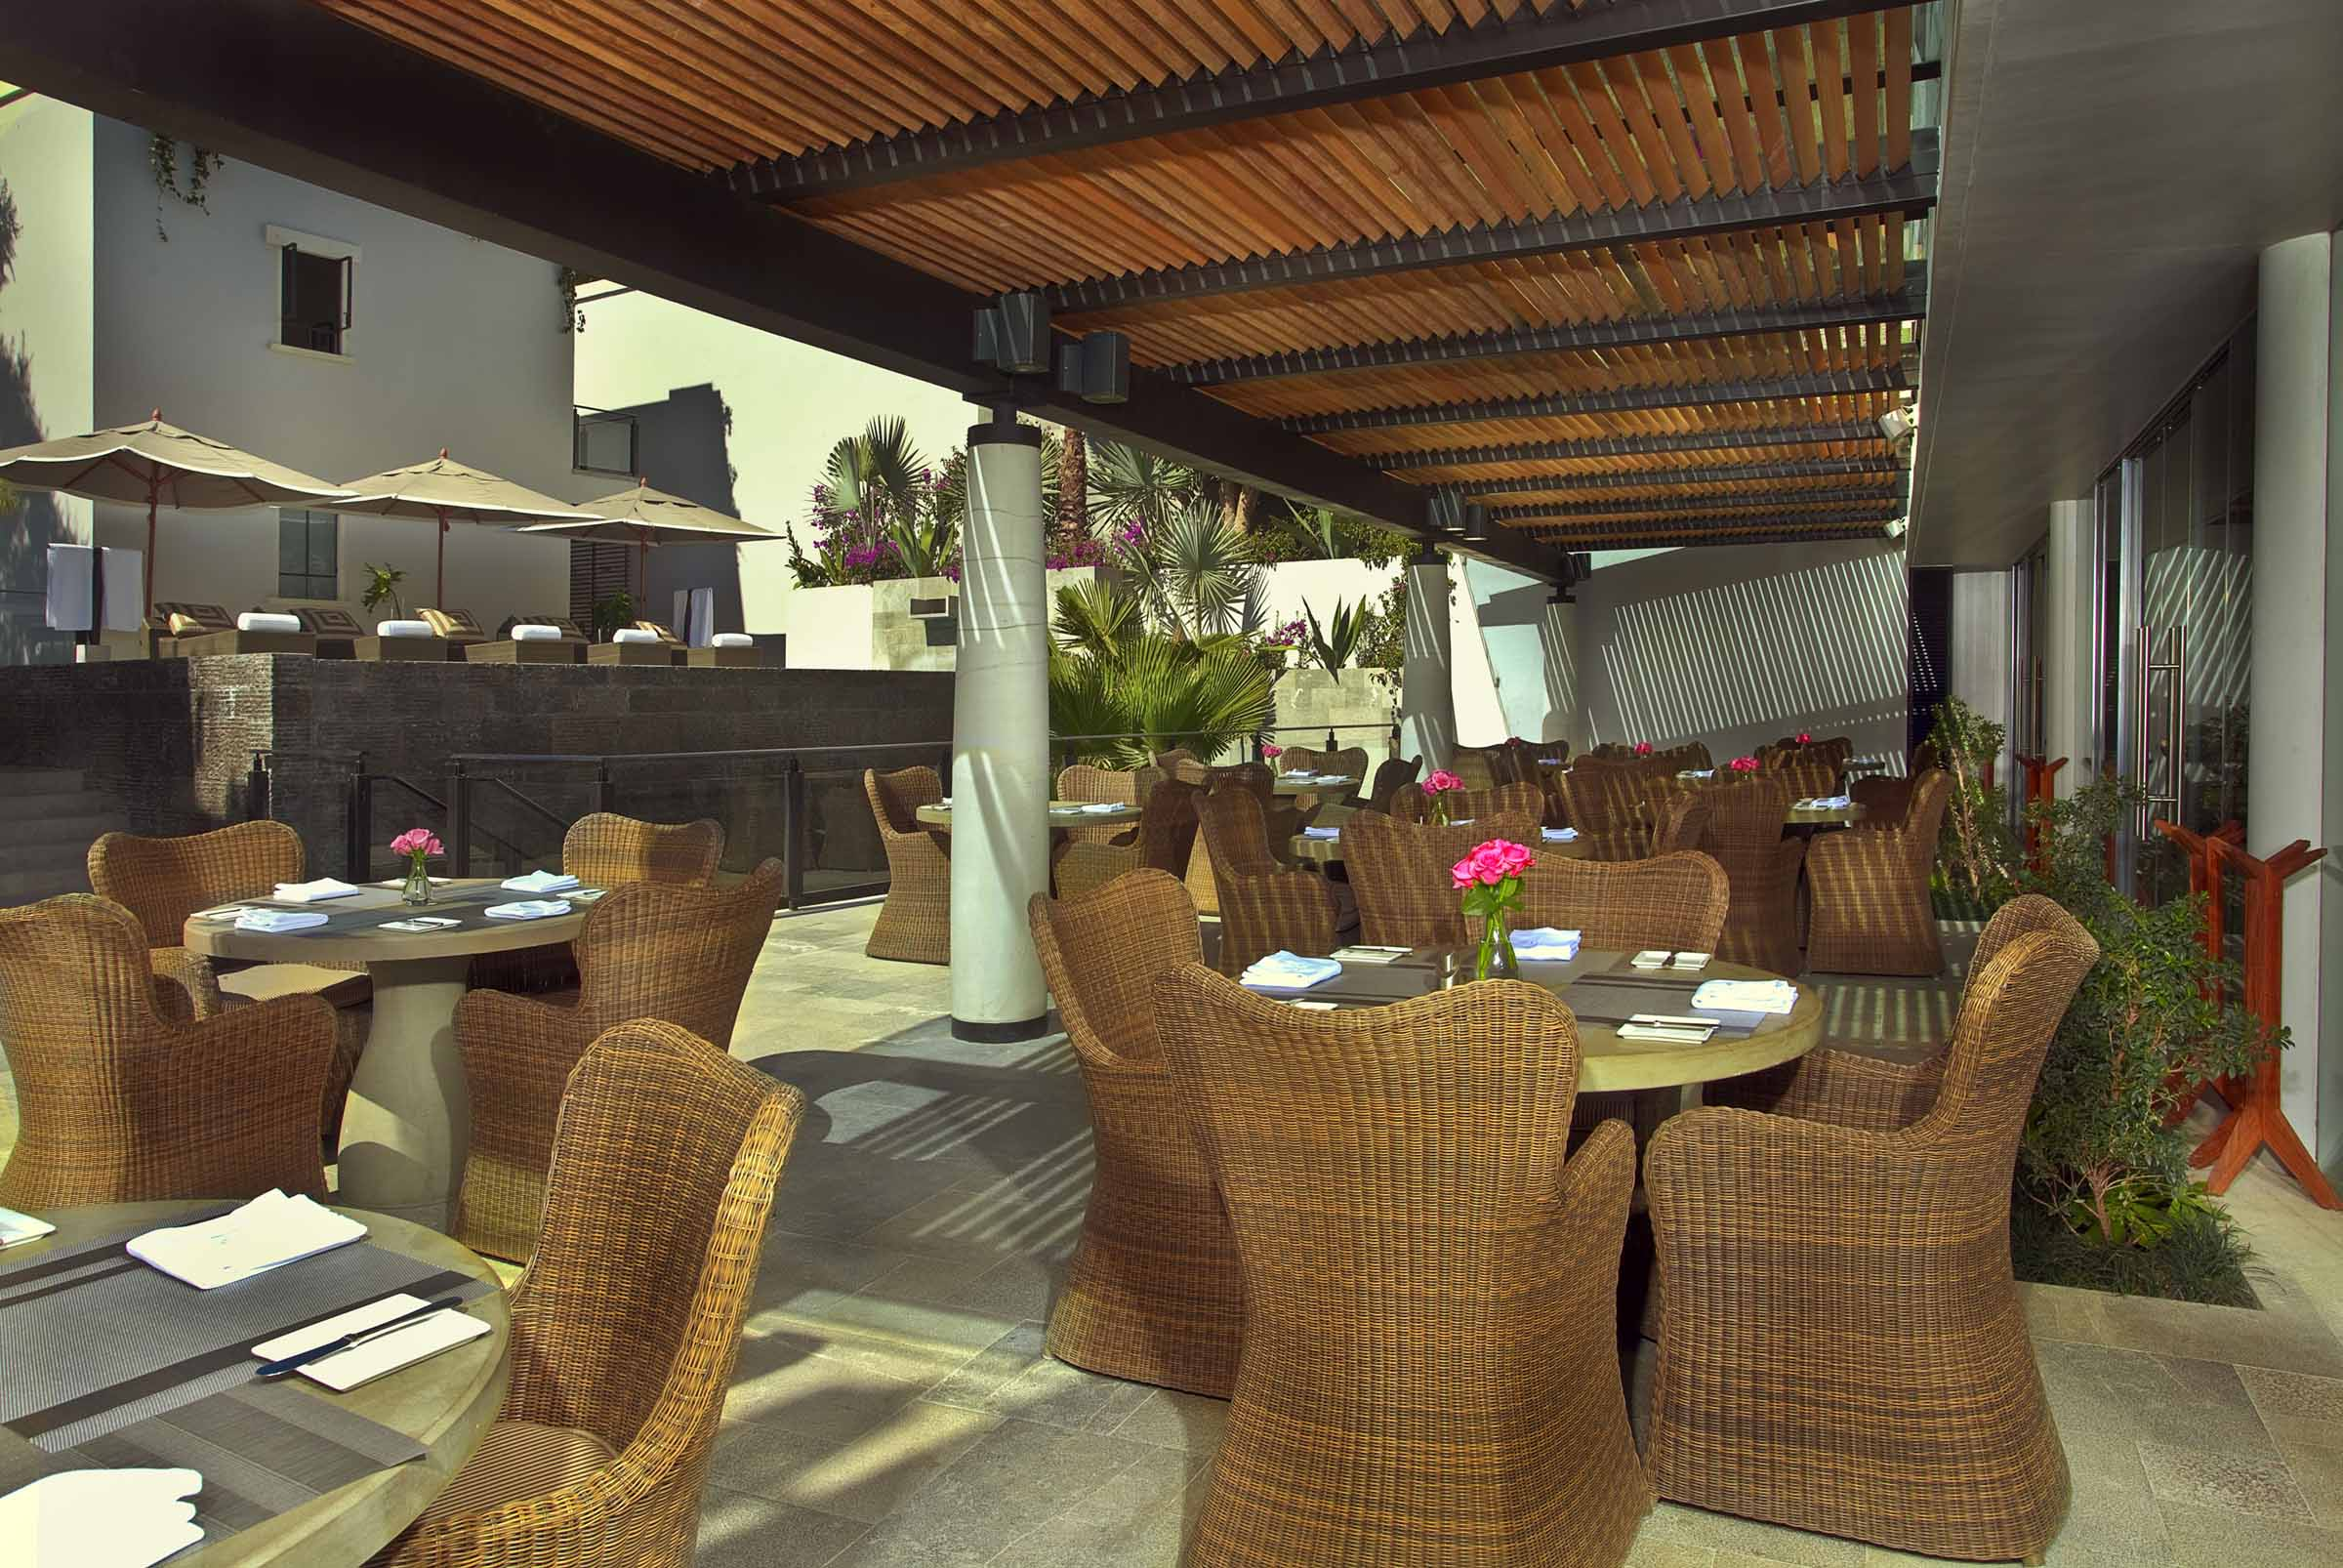 Backyard Porch Restaurant : Restaurant+Patio+Party Restaurant Patio Party httpwwwpic2flycom